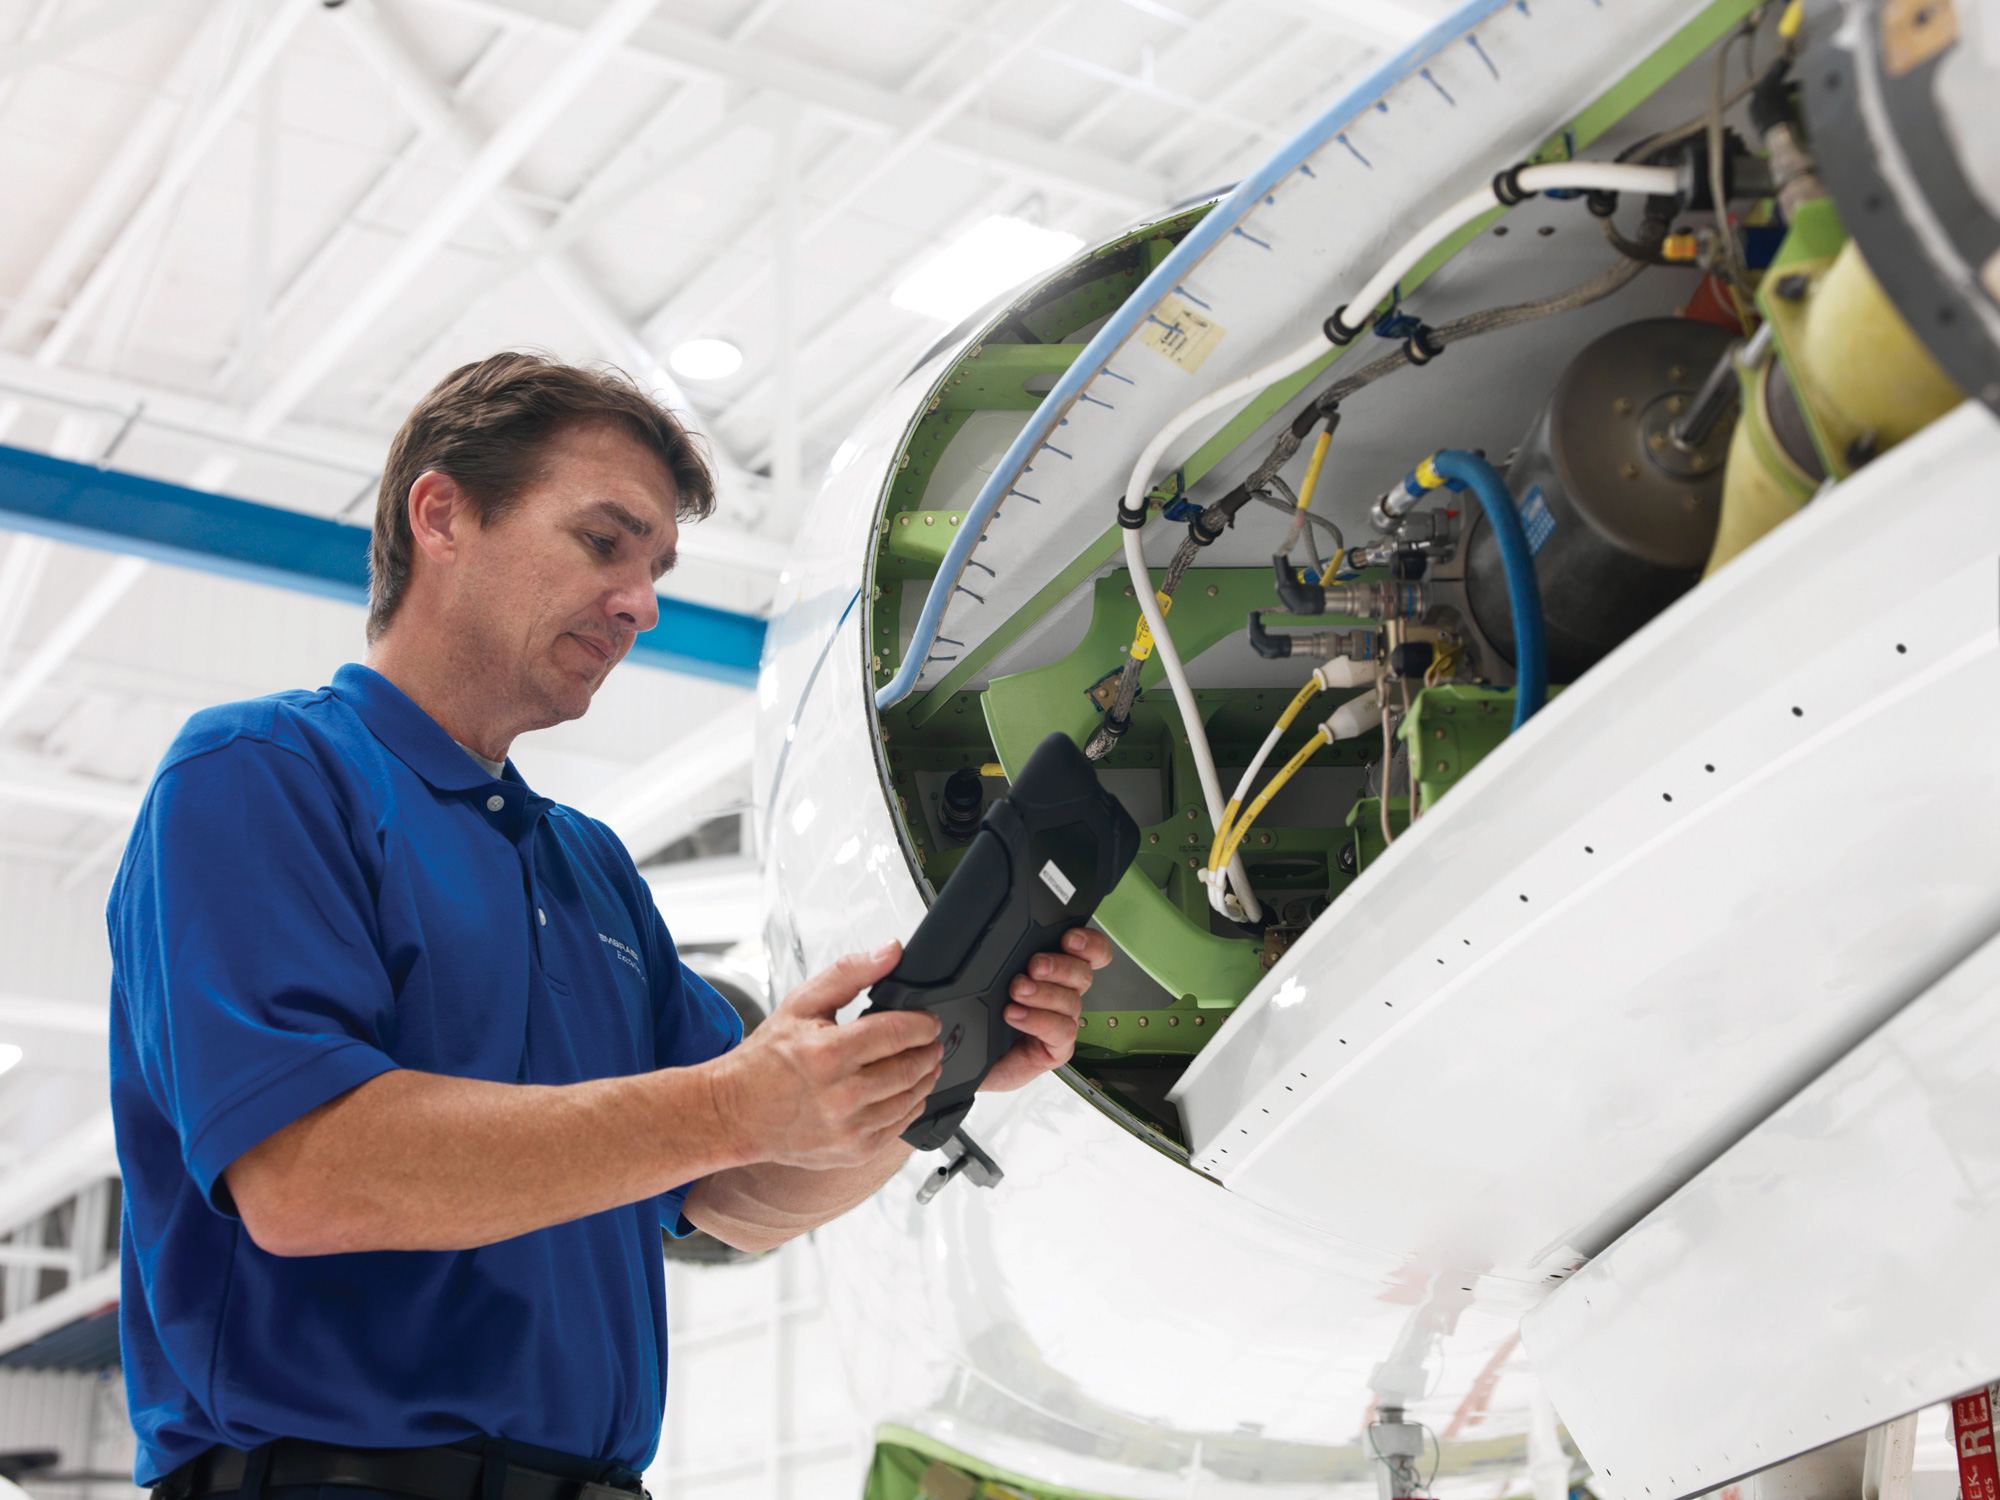 Aircraft and OEM crews make use of apps to reduce downtime required for maintenance.